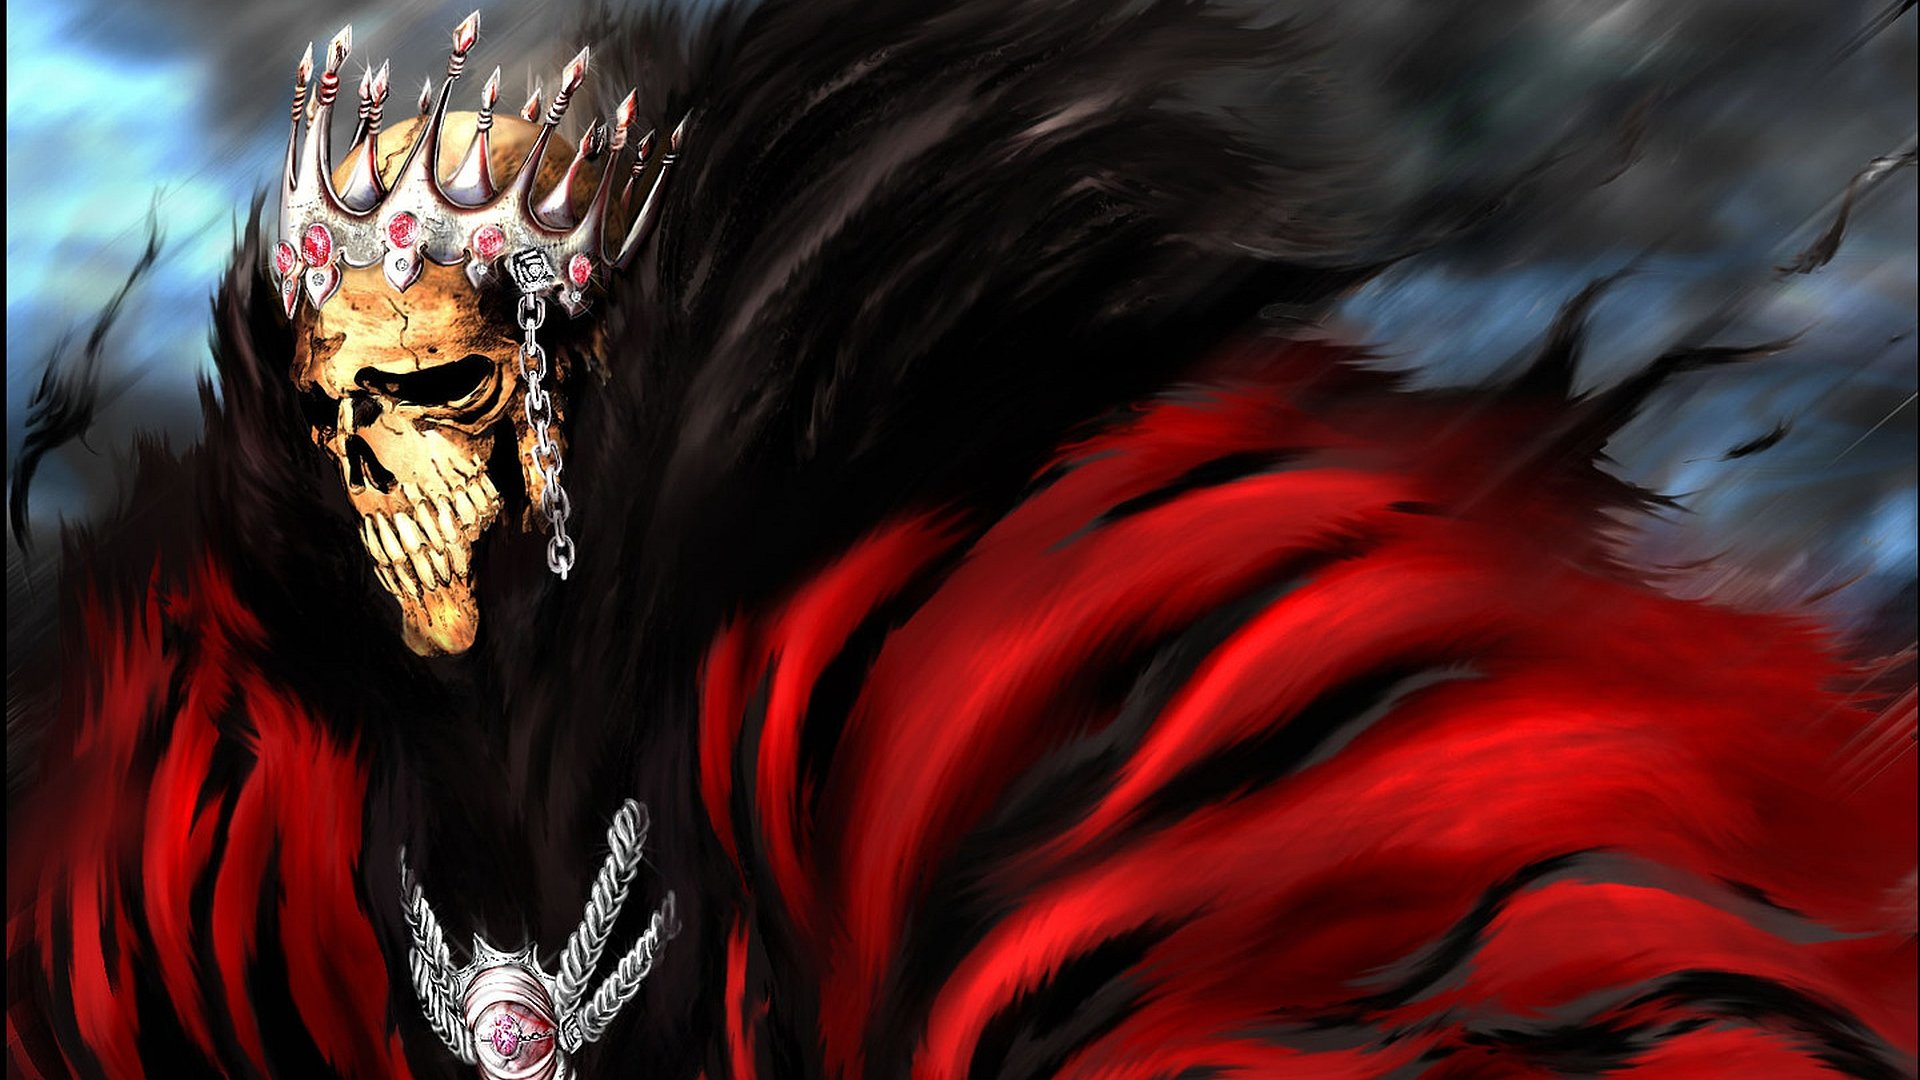 Download full hd 1080p Bleach desktop background ID:419306 for free